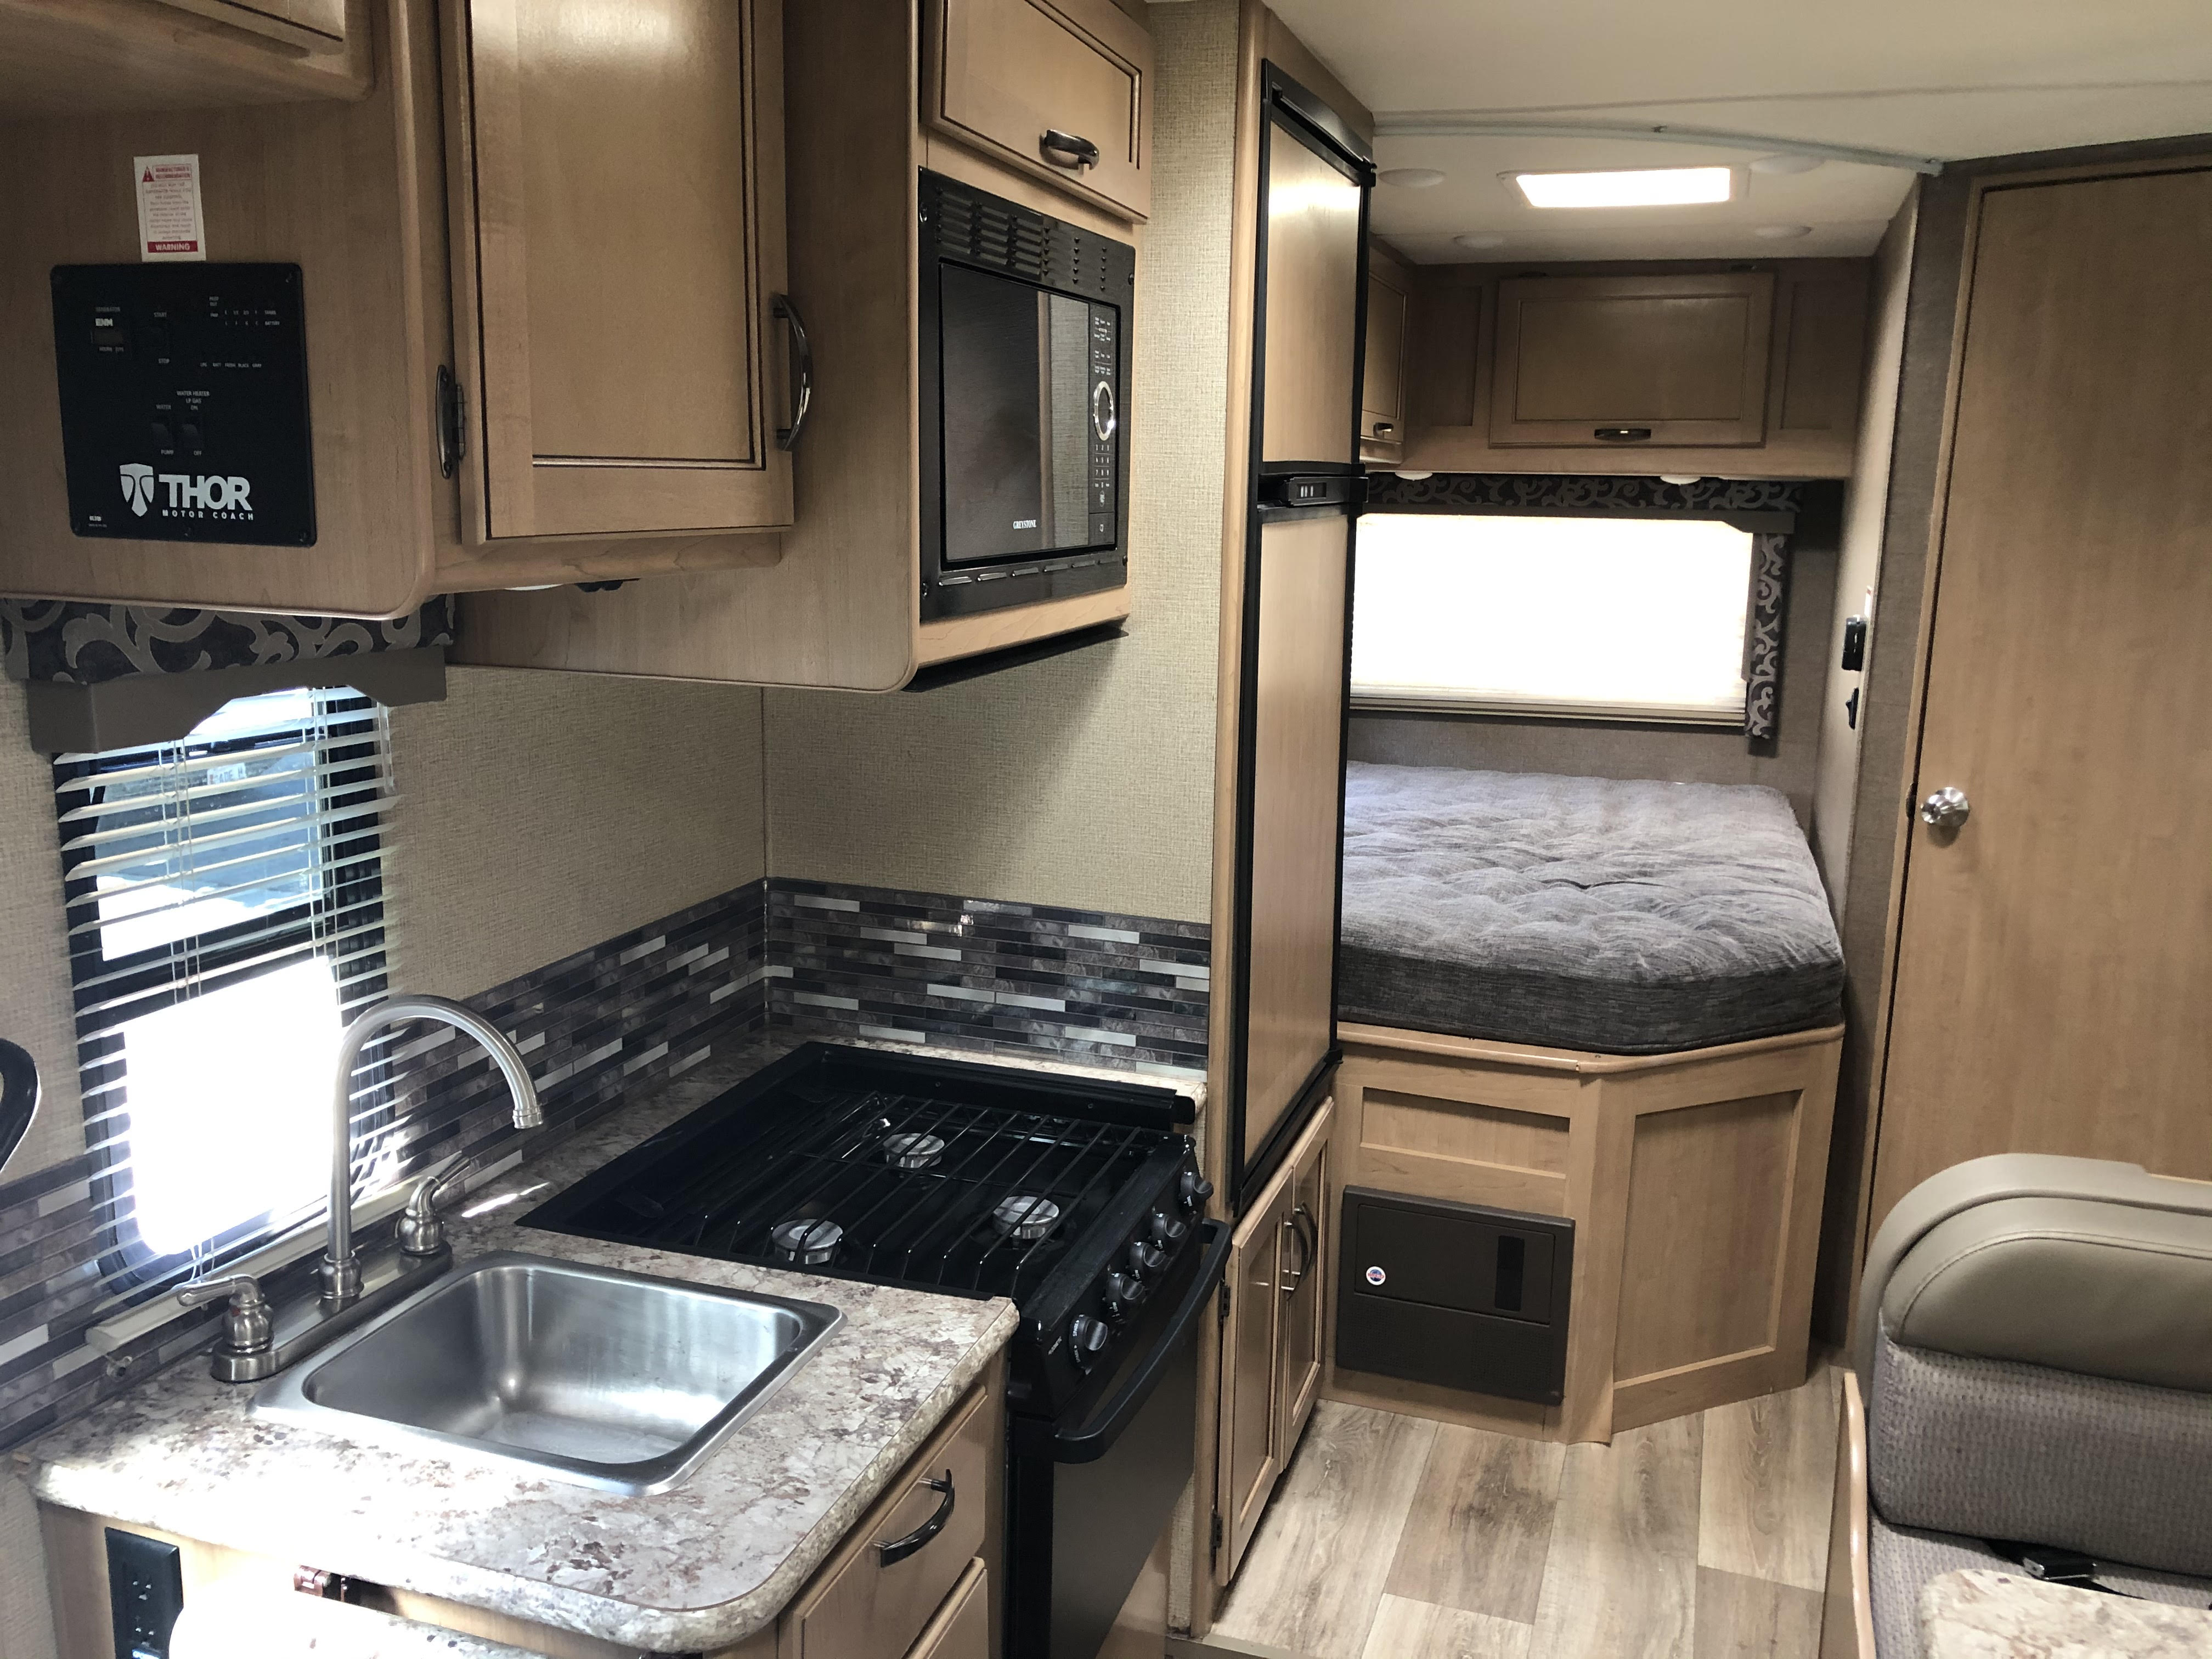 Includes 3 burner stove, oven, microwave and refrigerator. Generator on board to power all appliances.. Thor Motor Coach Four Winds 2019